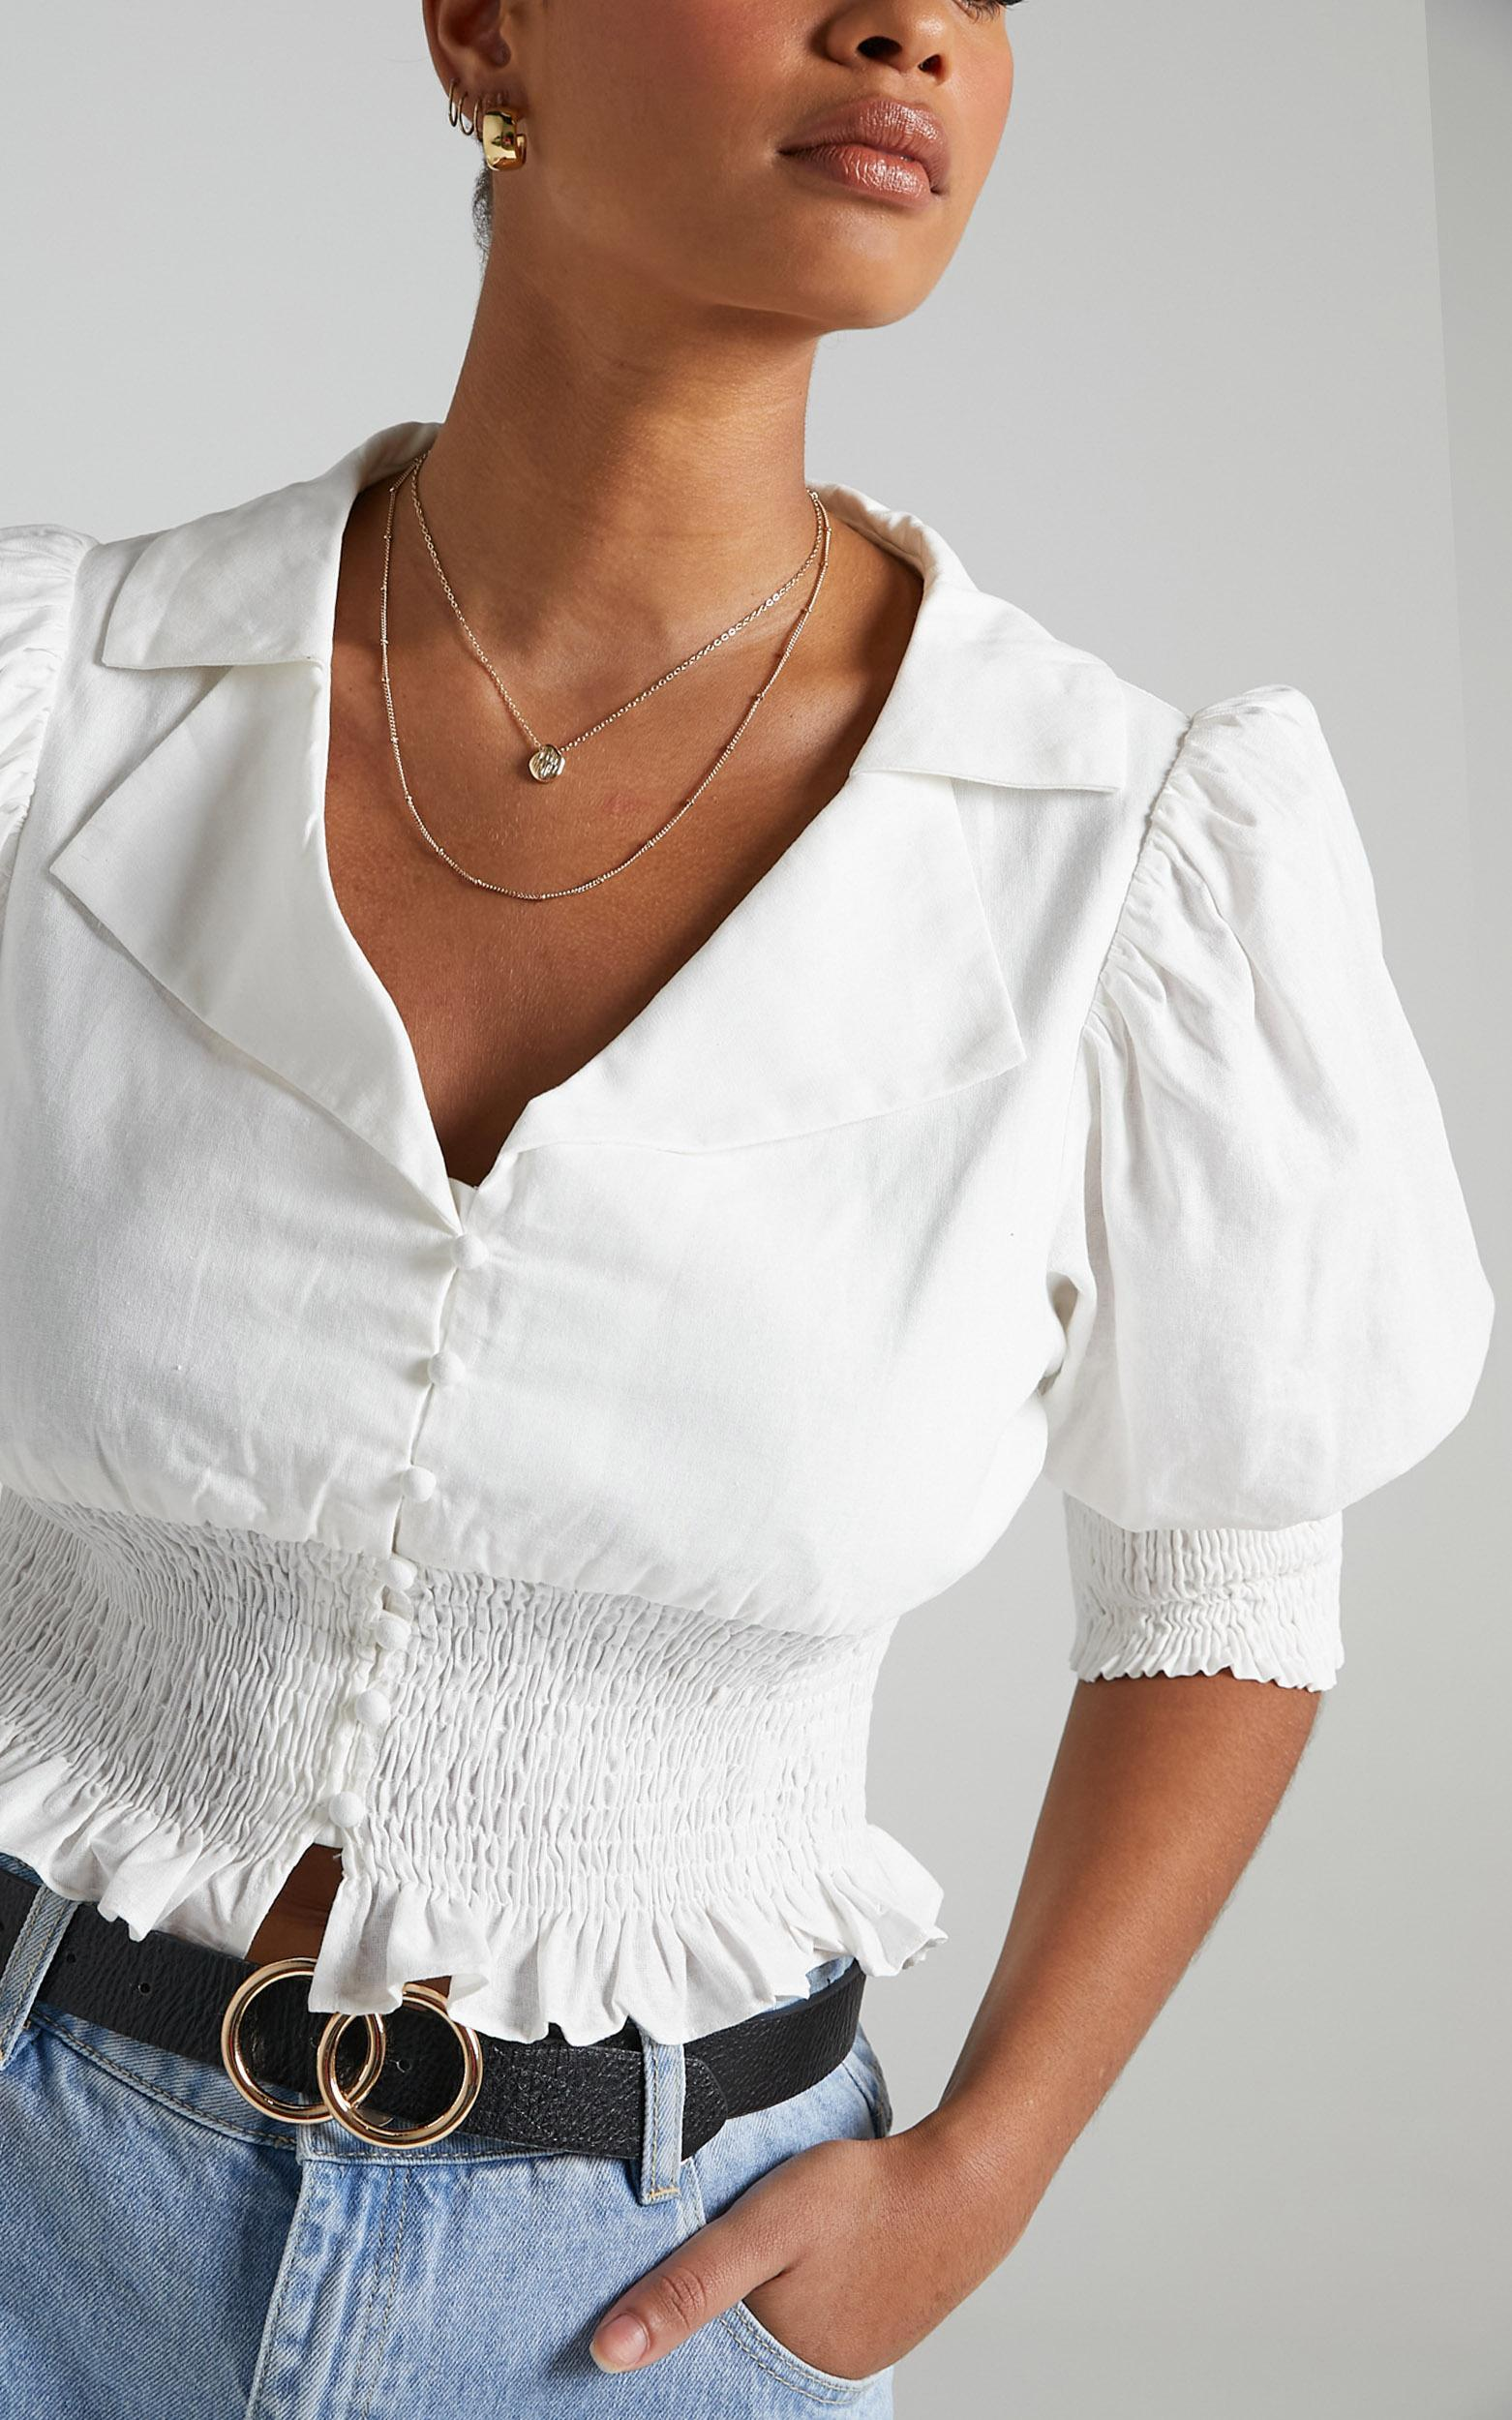 Nerio Top in White - 6 (XS), White, hi-res image number null